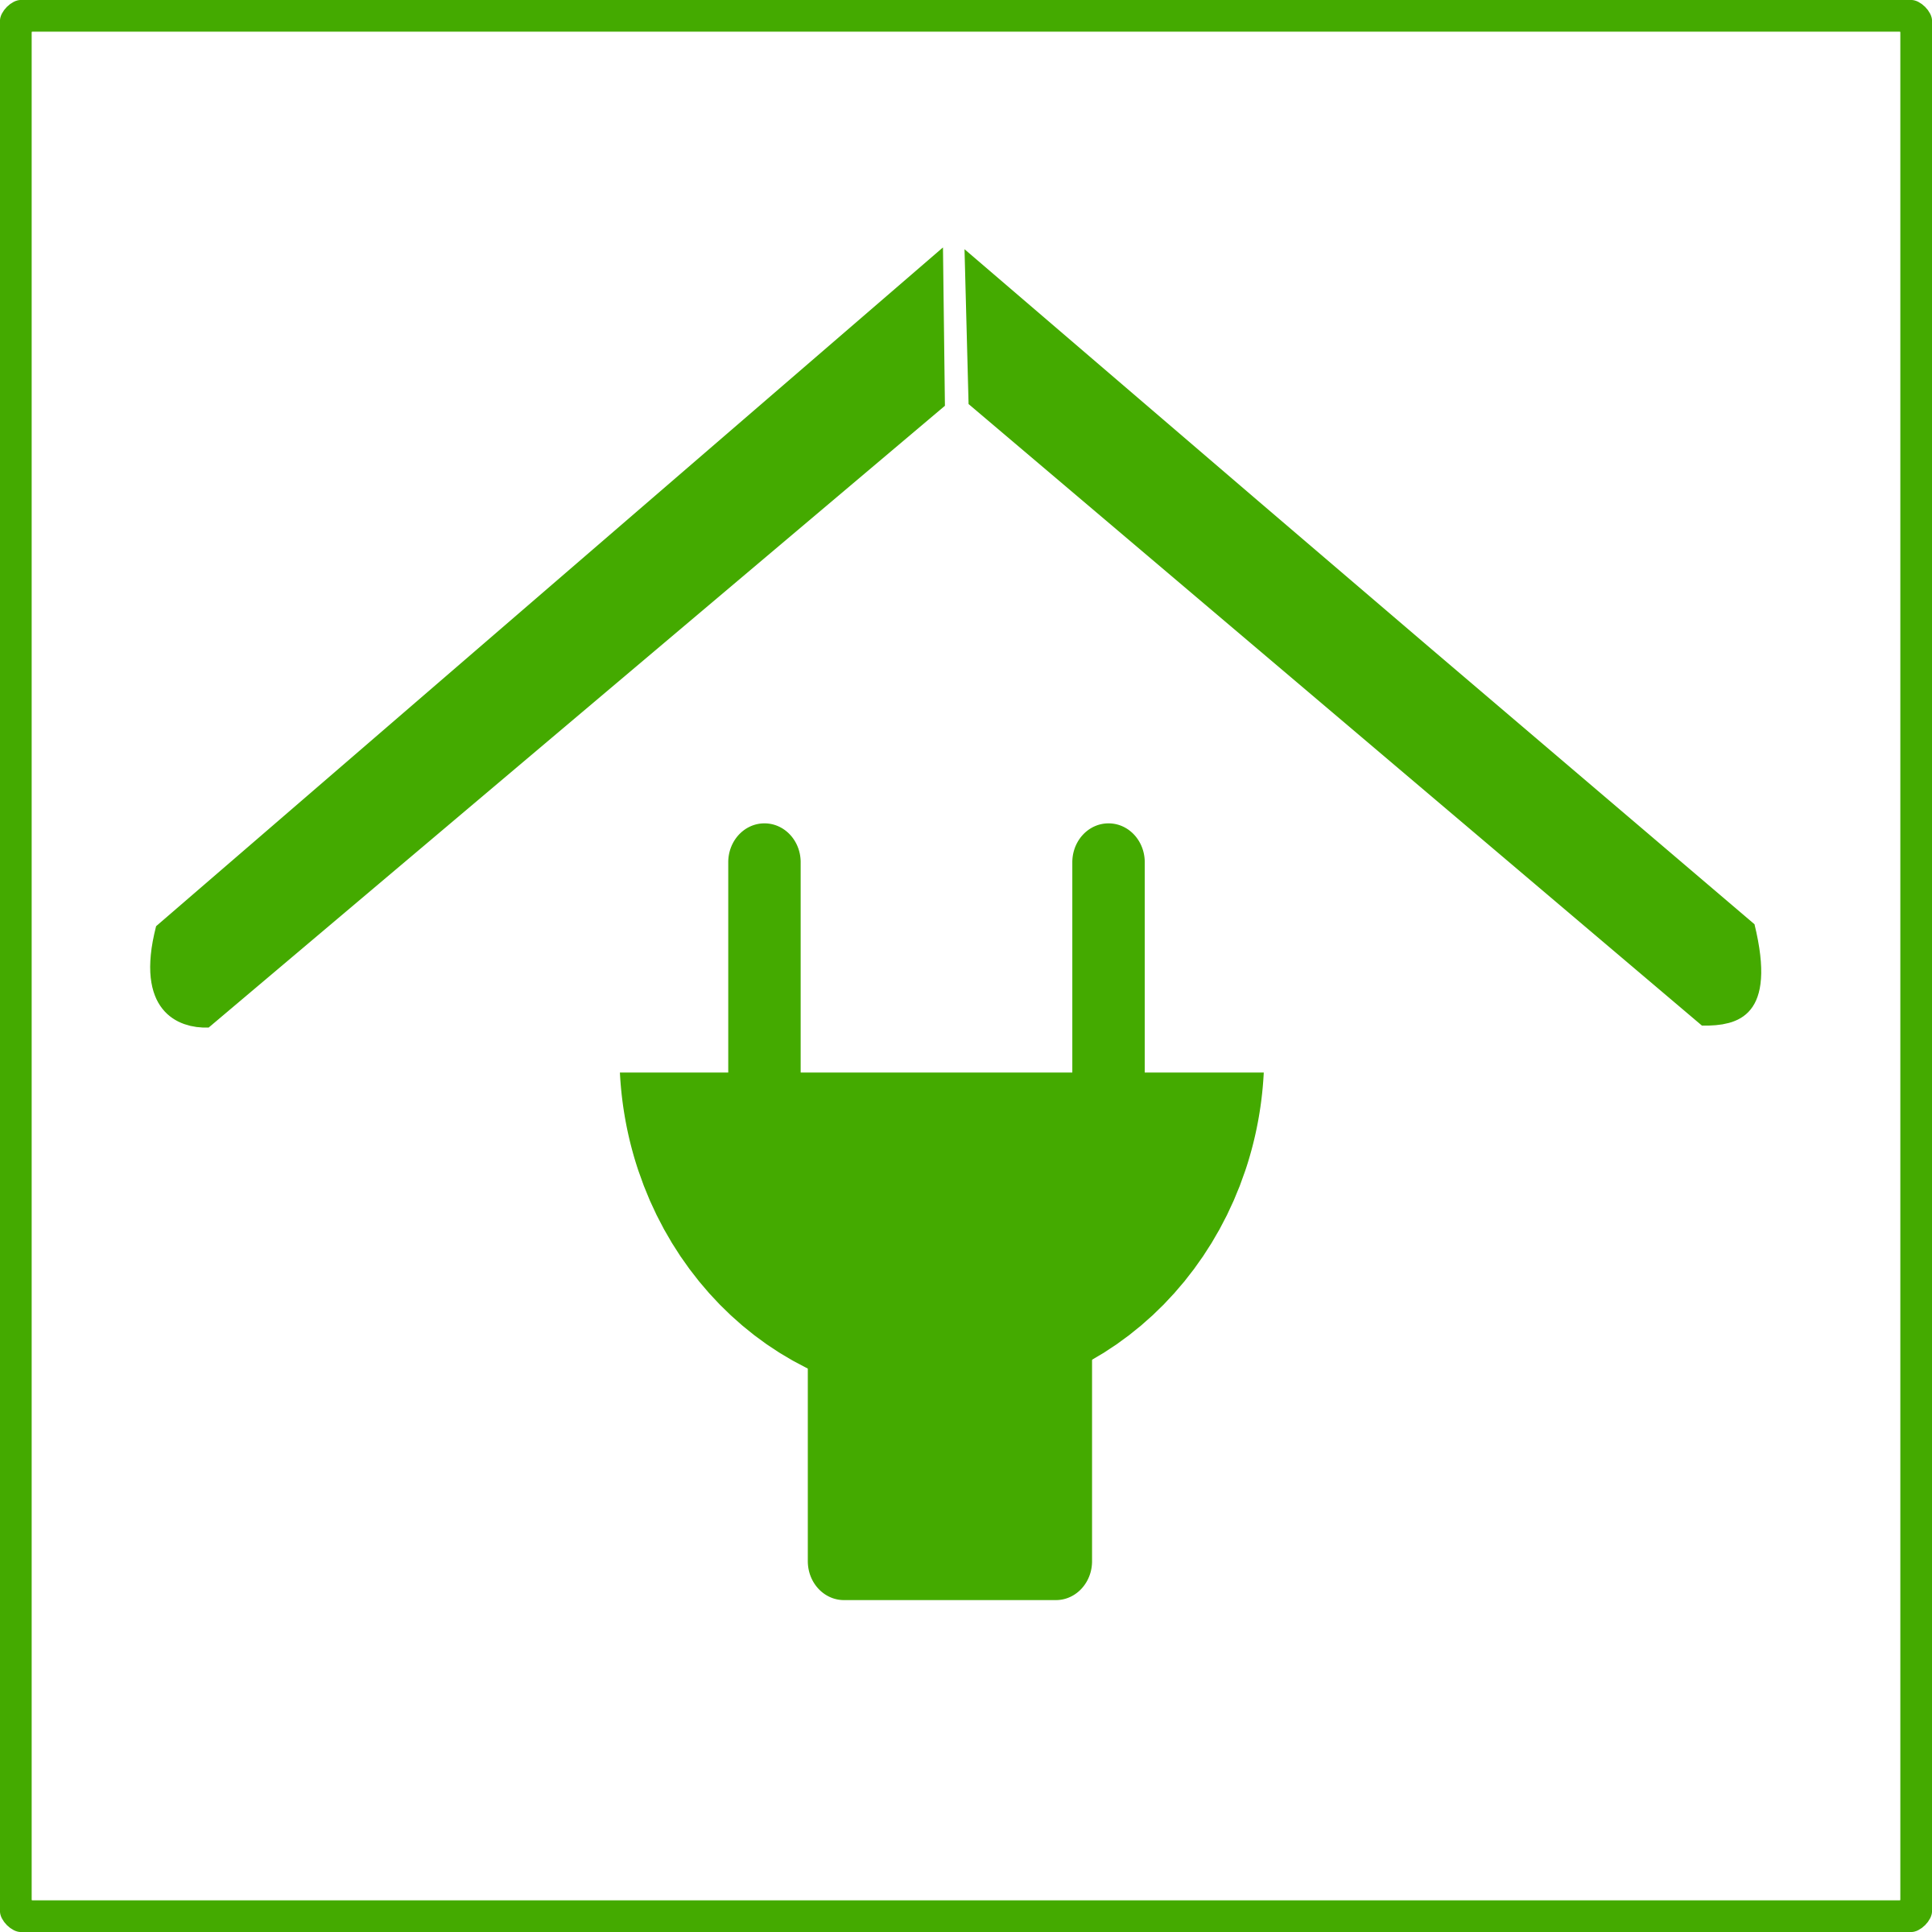 Eco green house big. Energy clipart icon